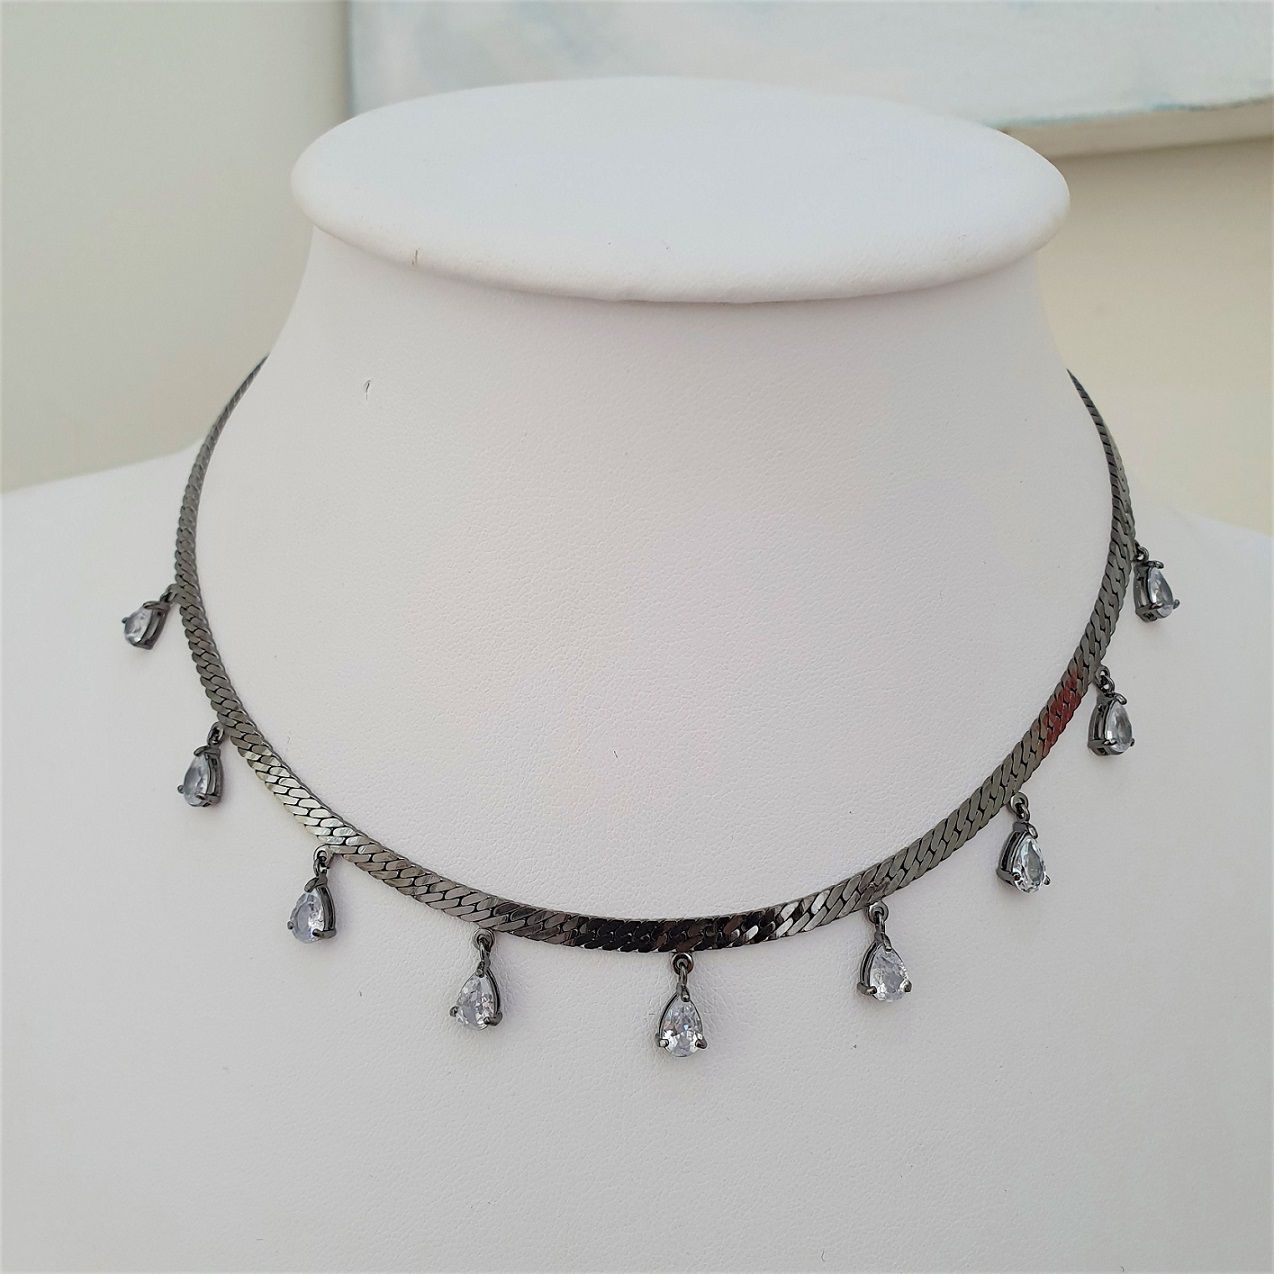 Chocker Correntaria com Gotas 4377